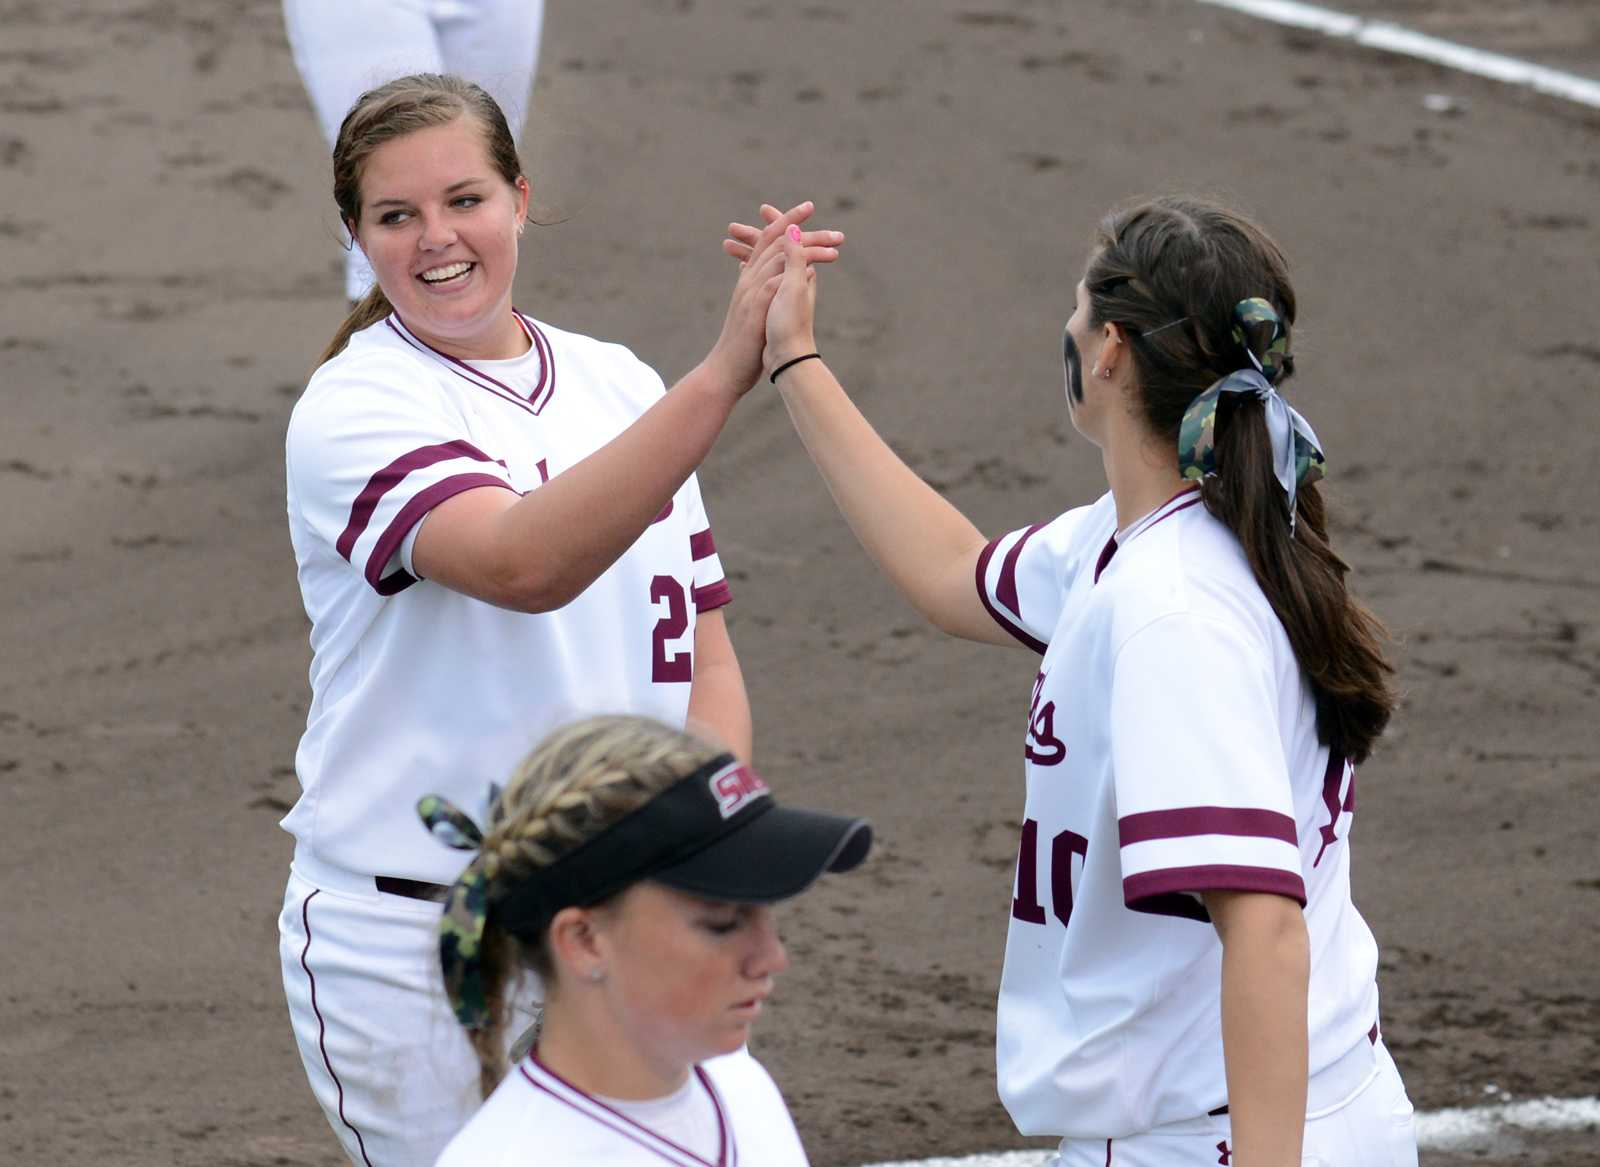 Sophomore pitcher Nicole Doyle (right) congratulates sophomore pitcher Brianna Jones (left) after completing an inning on Saturday, March 25, 2017, during SIU's 1-0 victory over Drake at Charlotte West Stadium. (Sean Carley | @SeanMCarley)